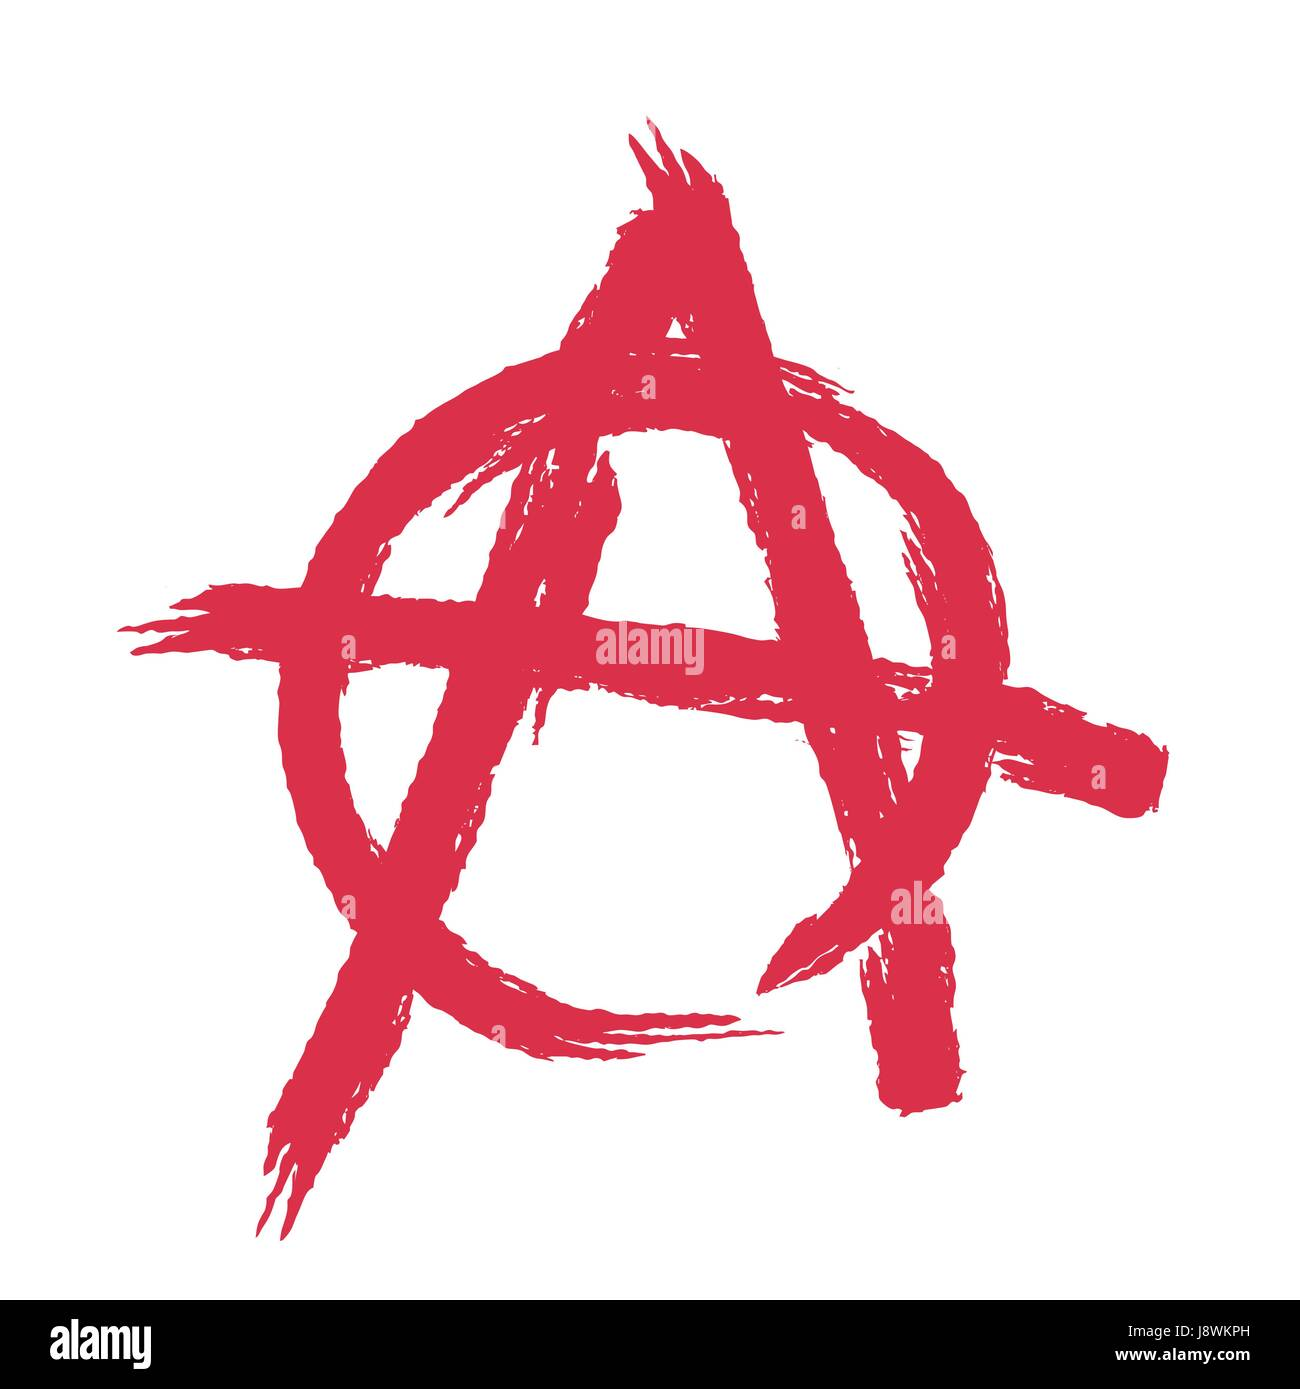 Anarchy sign isolated. Brush strokes grunge style - Stock Vector